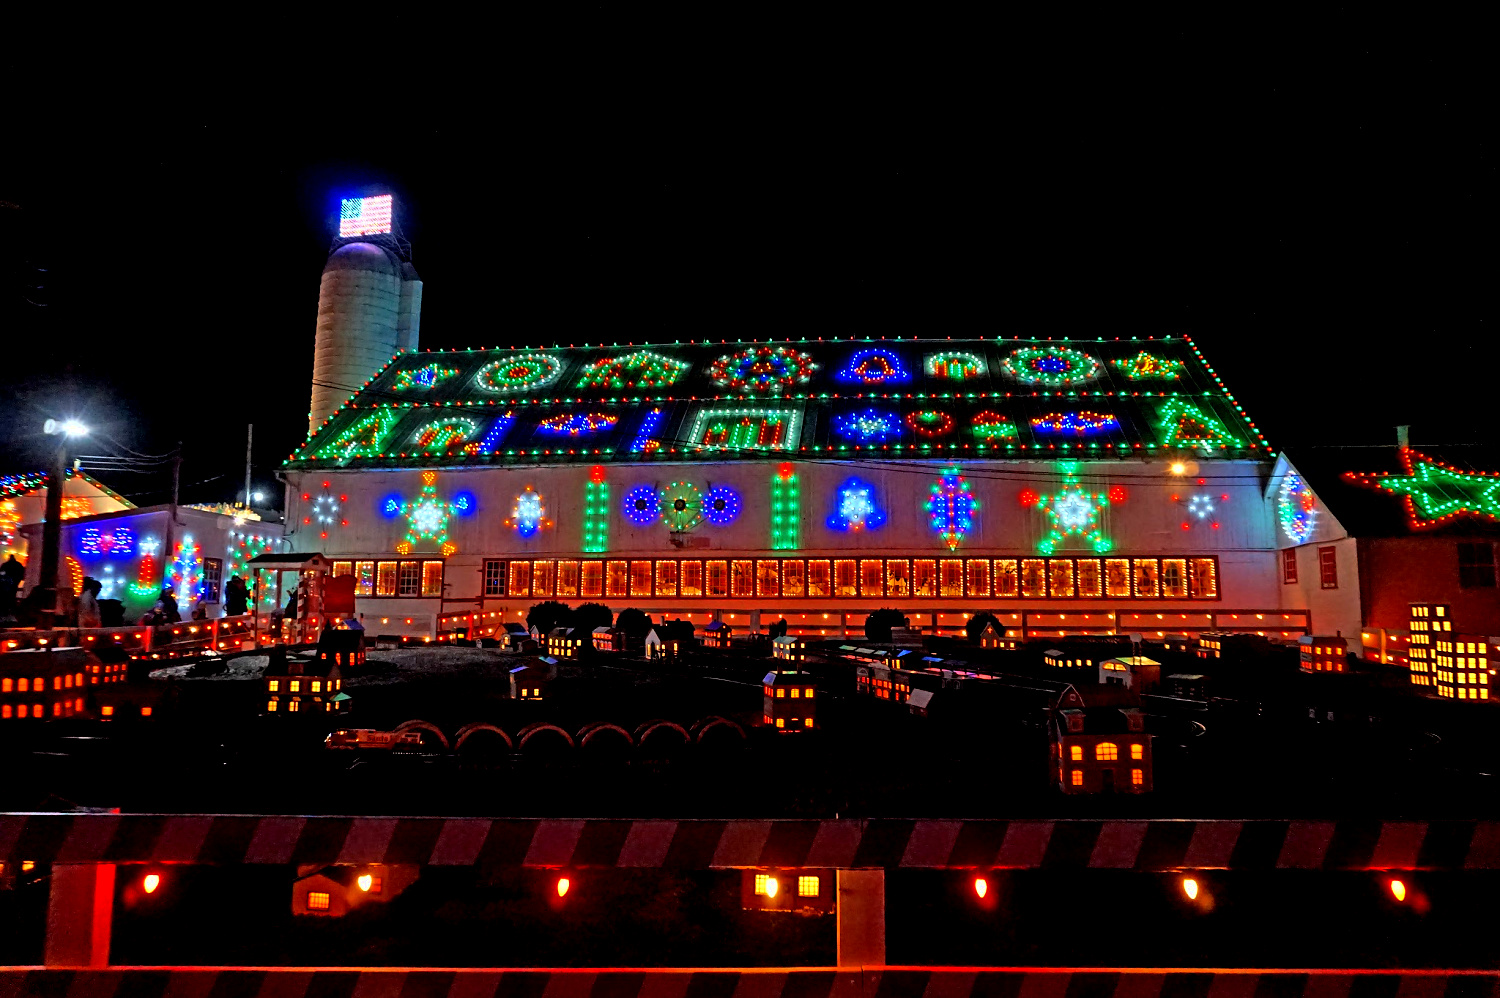 Koziar's Christmas Village - a barn decorated with Christmas lights.